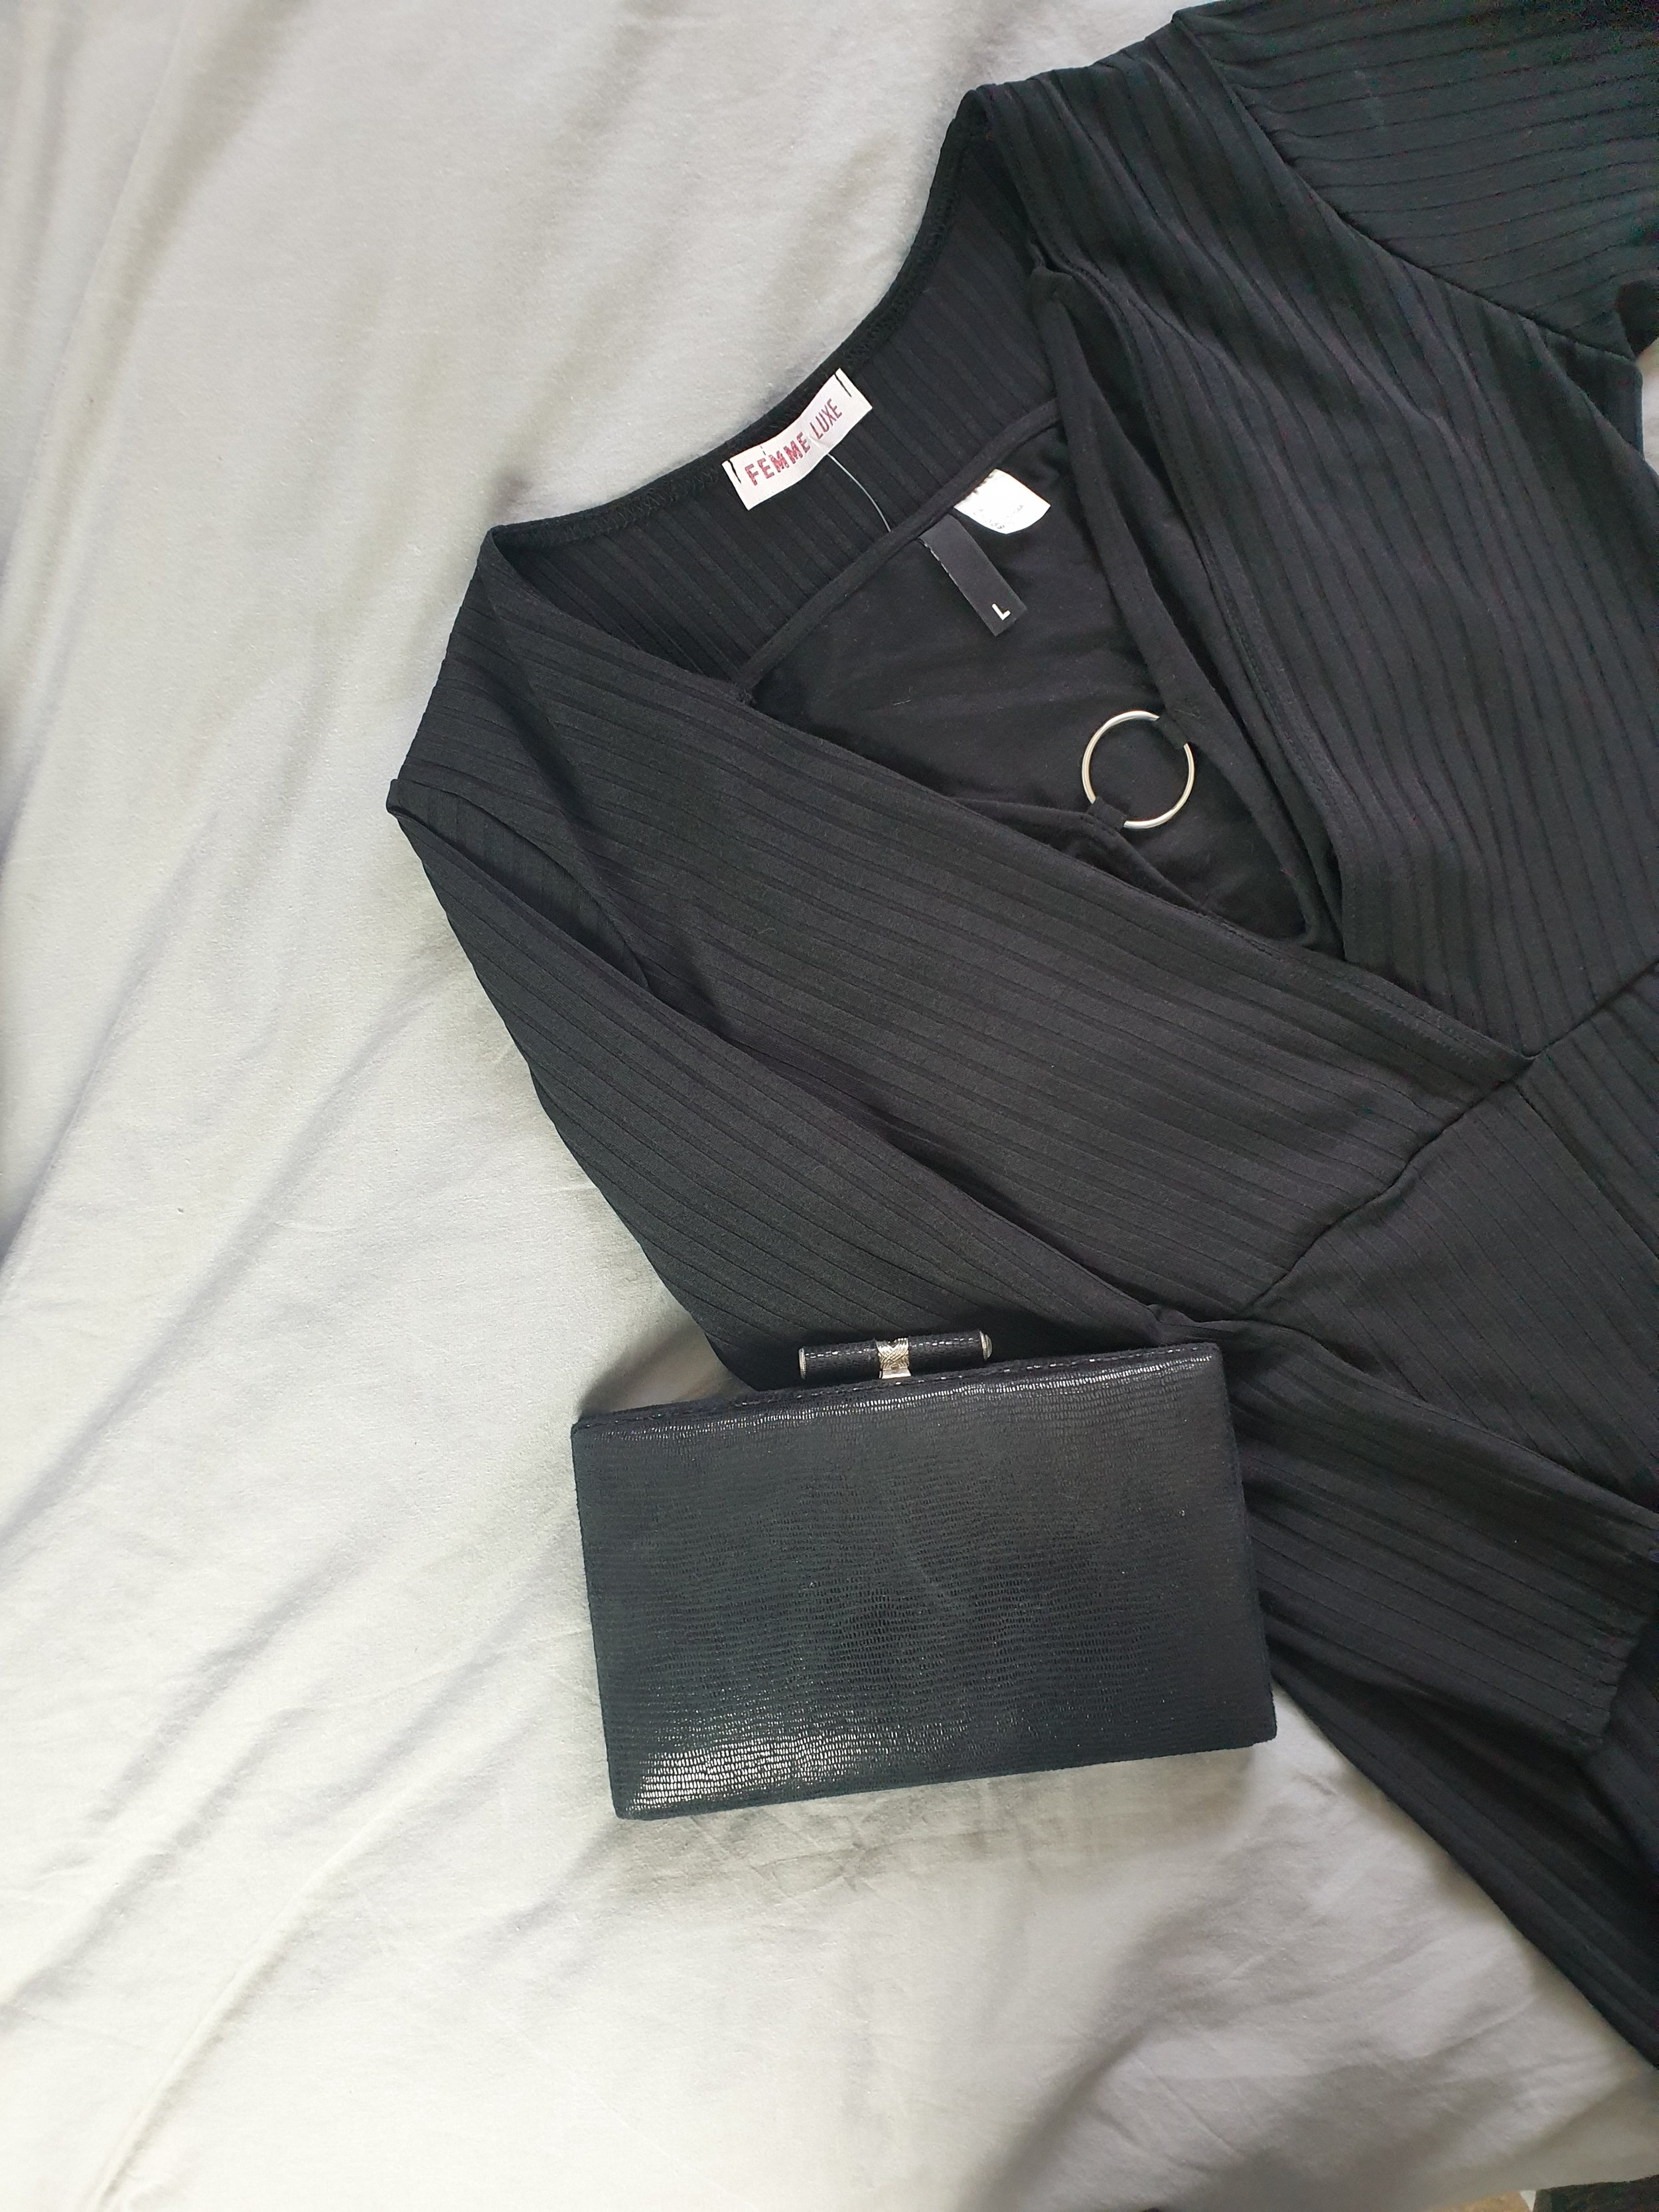 fashion blogger bad girl inspired ootd outfit of the day https://femmeluxefinery.co.uk/collections/jumpsuits/products/black-slim-belted-jumpsuit-teagan